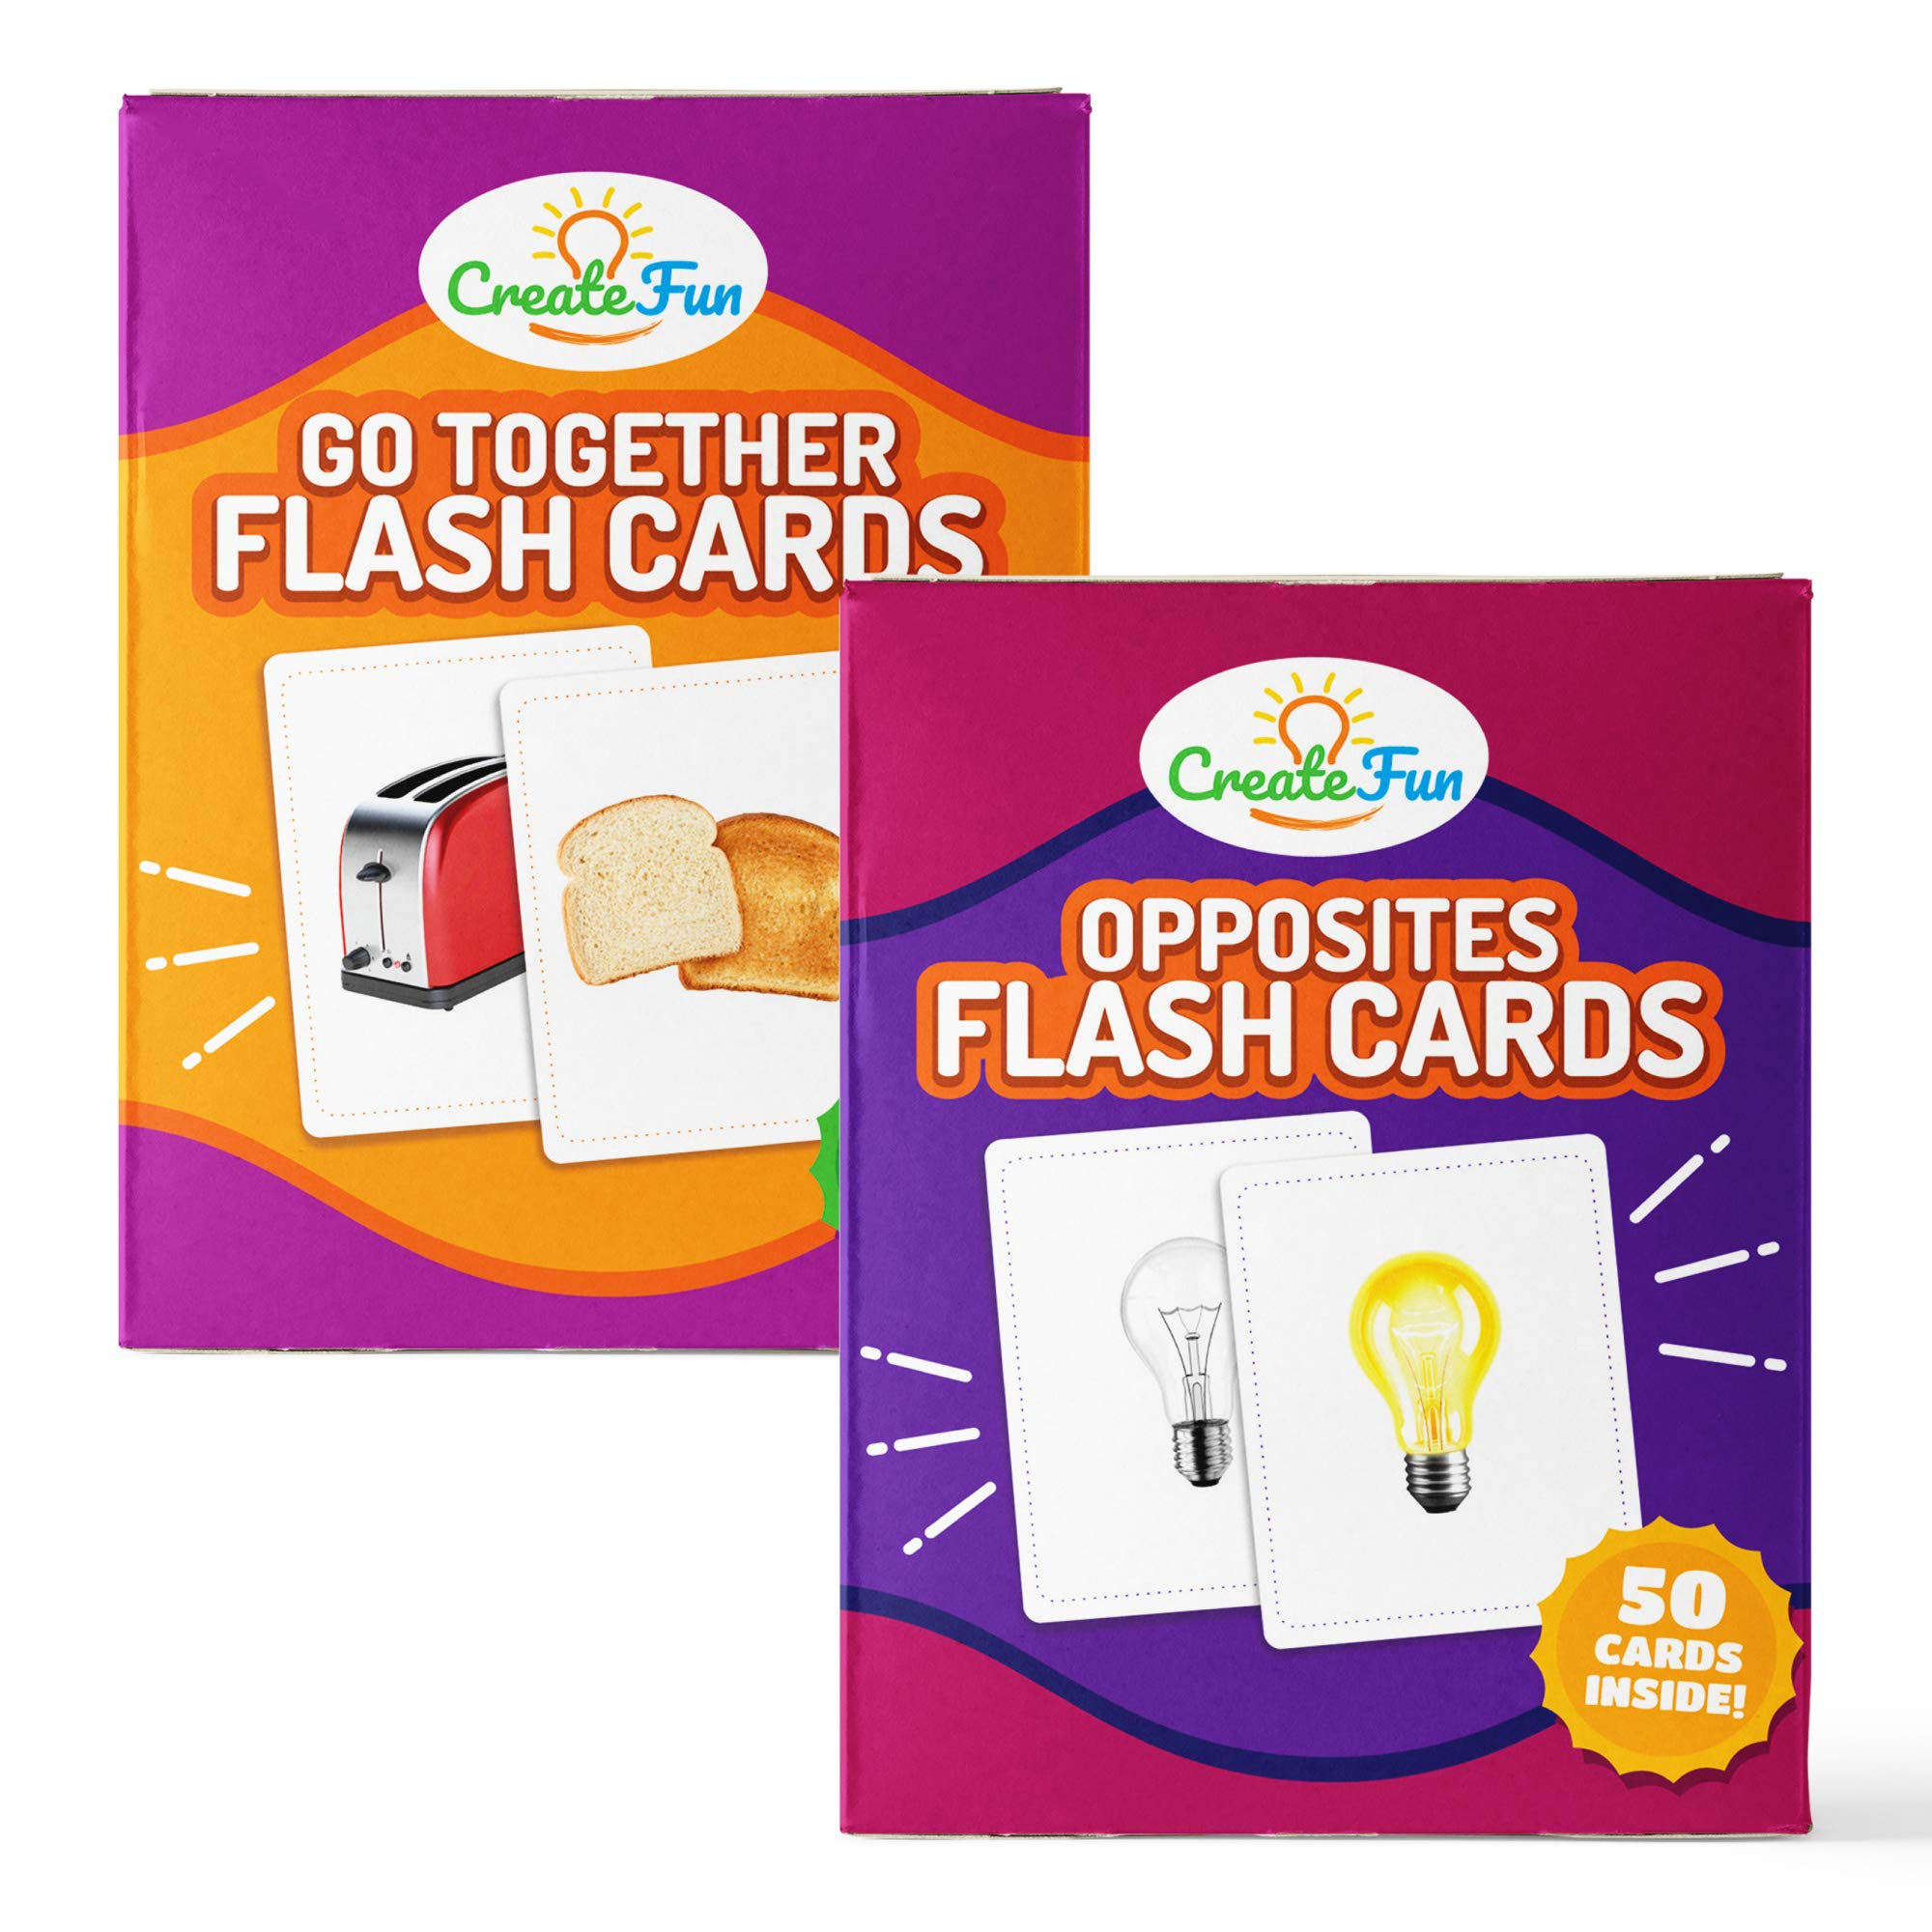 Go Together and Opposites Flash Cards Gift Set | 100 Matching Educational Photo Cards | 7 Starter Learning Games | For Your Classroom, Parents, Speech Therapy Materials and ESL Teaching Materials